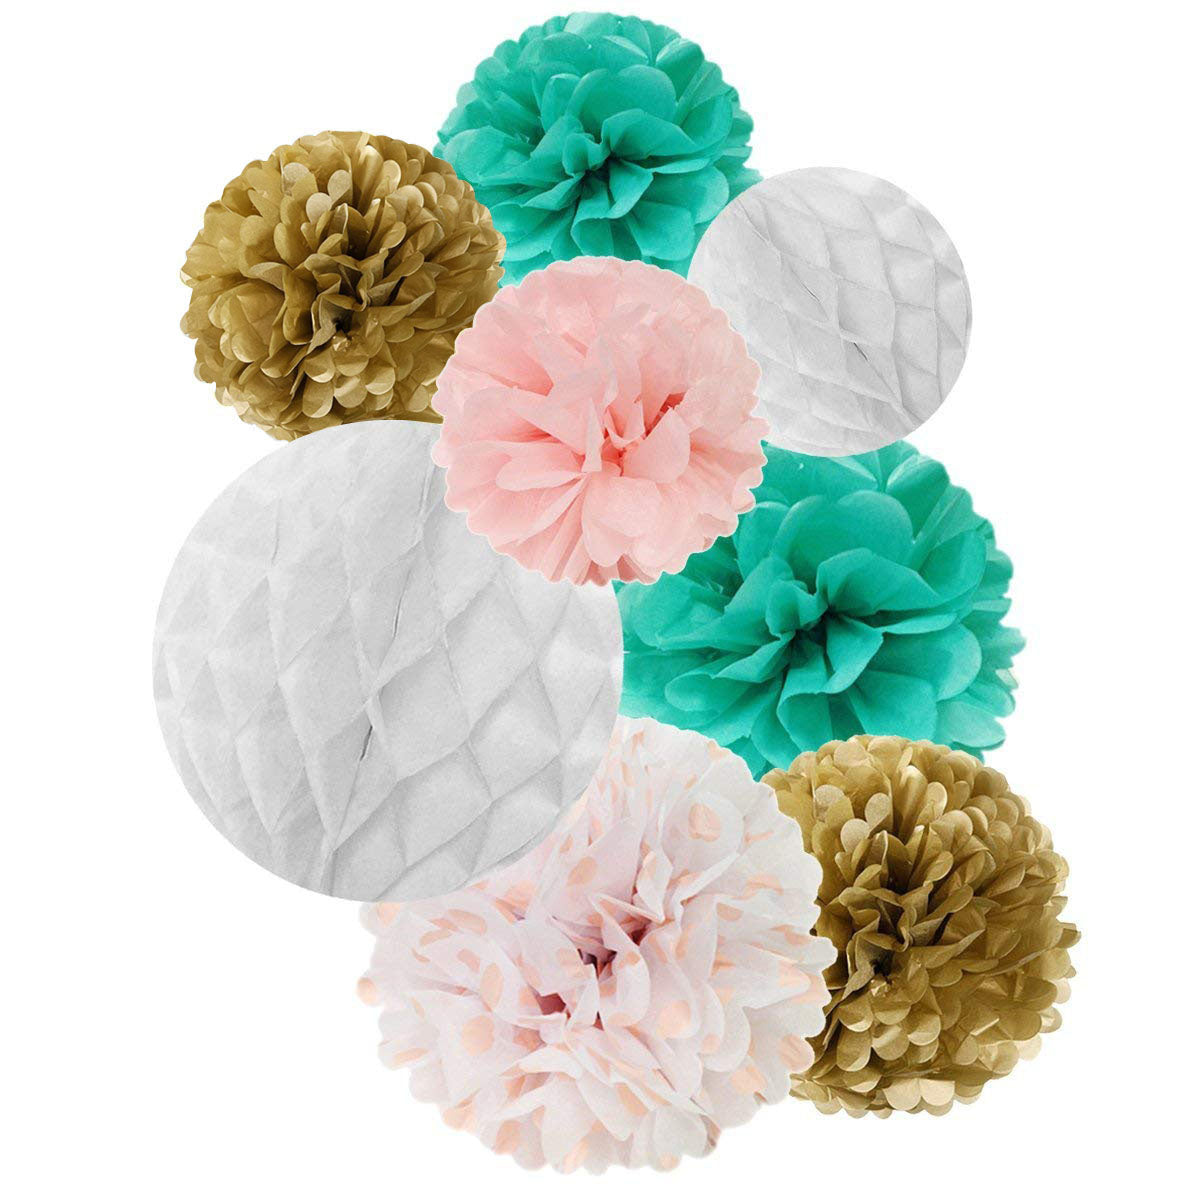 Wrapables Set of 32 Tissue Honeycomb Ball and Pom Pom Party Decorations, Aqua/ Light Pink/ Gold/ White